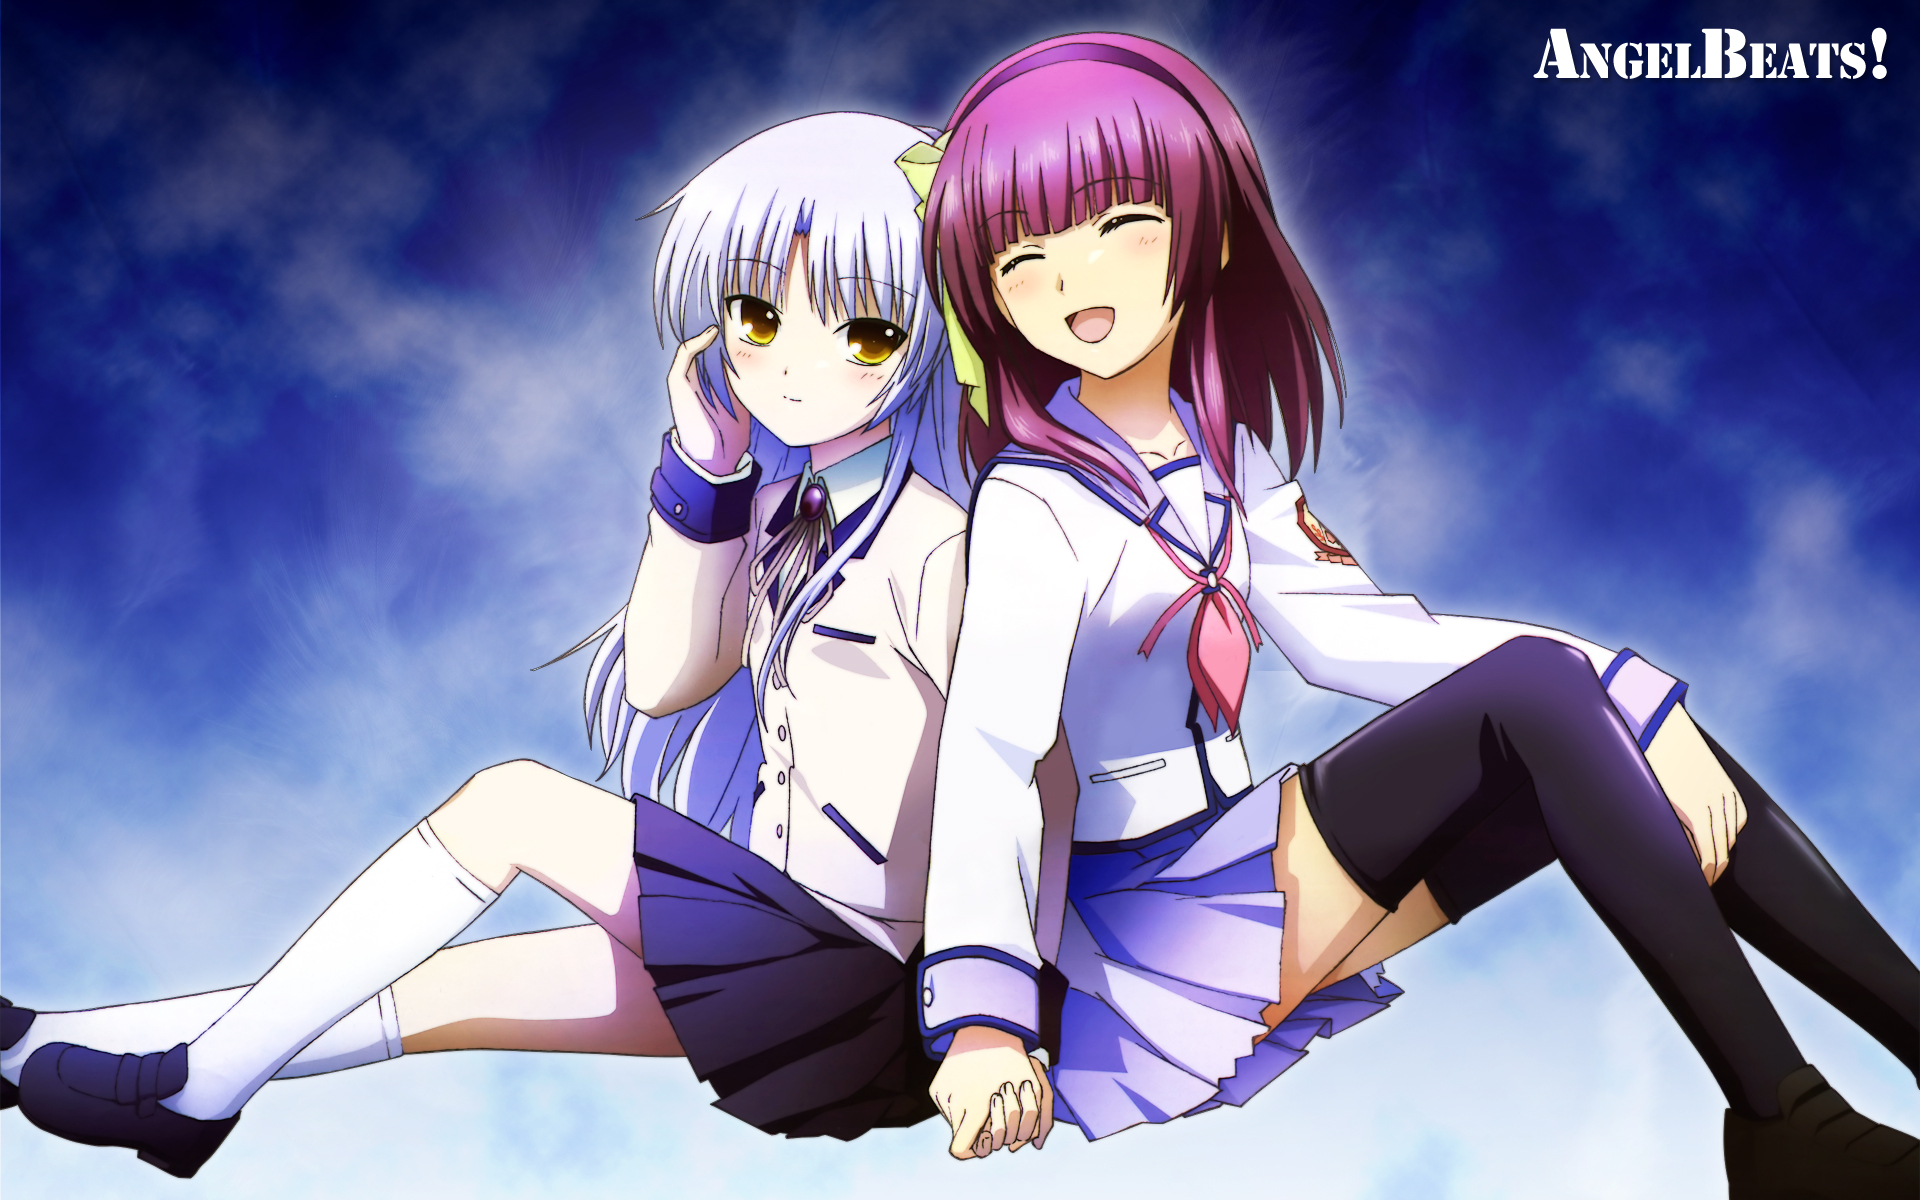 angel beats yuri - photo #37